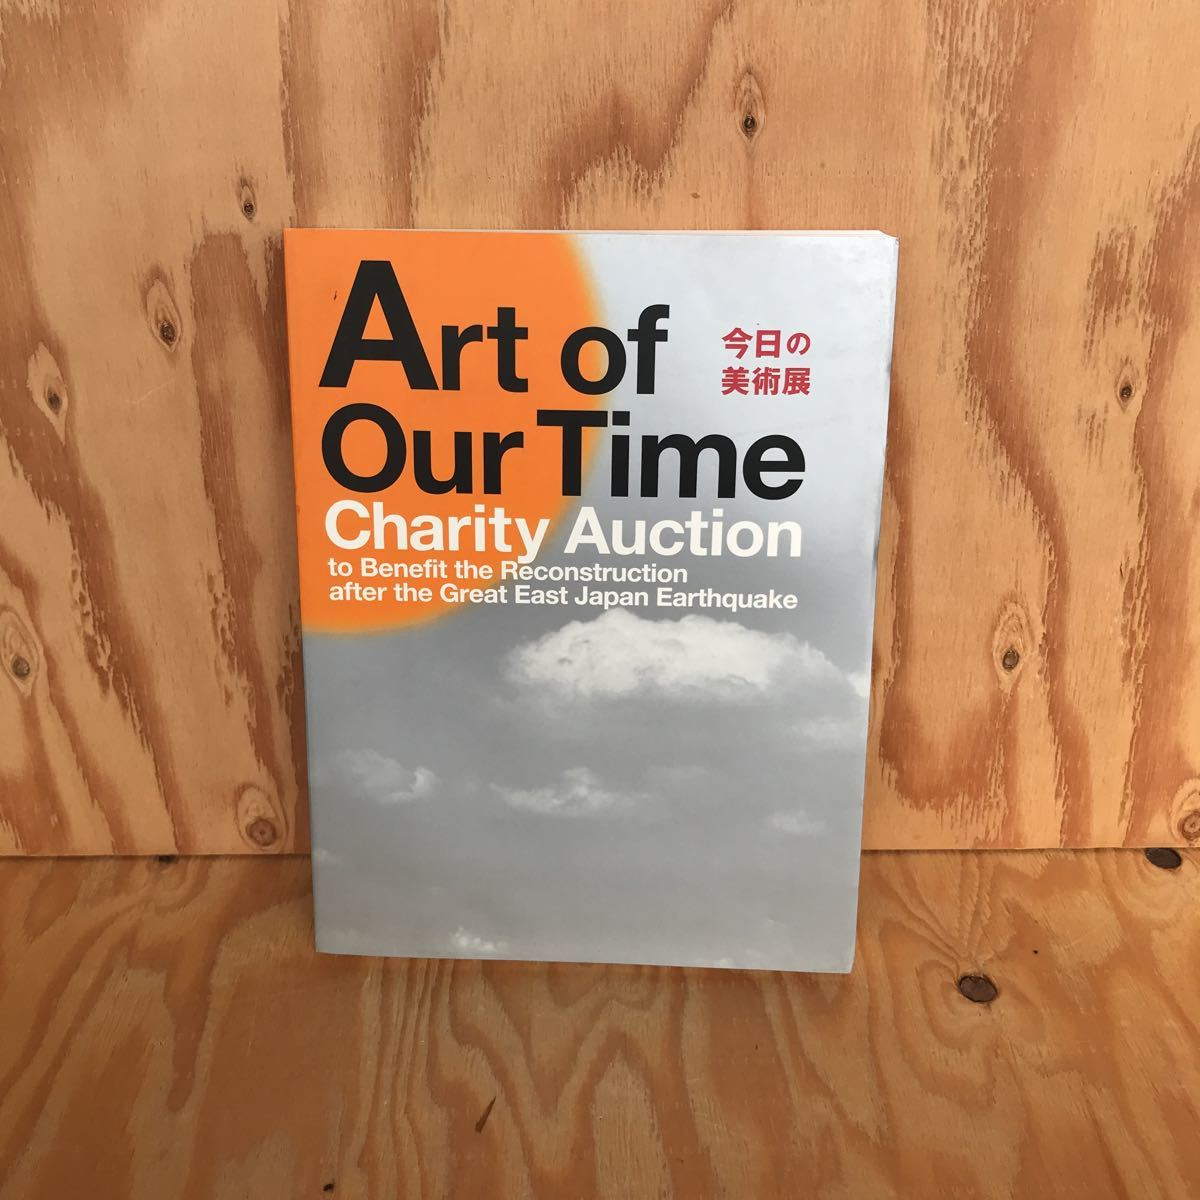 2F-810レア◎◎[今日の美術展 Art of OurTime Charity Auction東日本大震災復興 チャリティ・オークション] 2011年発行